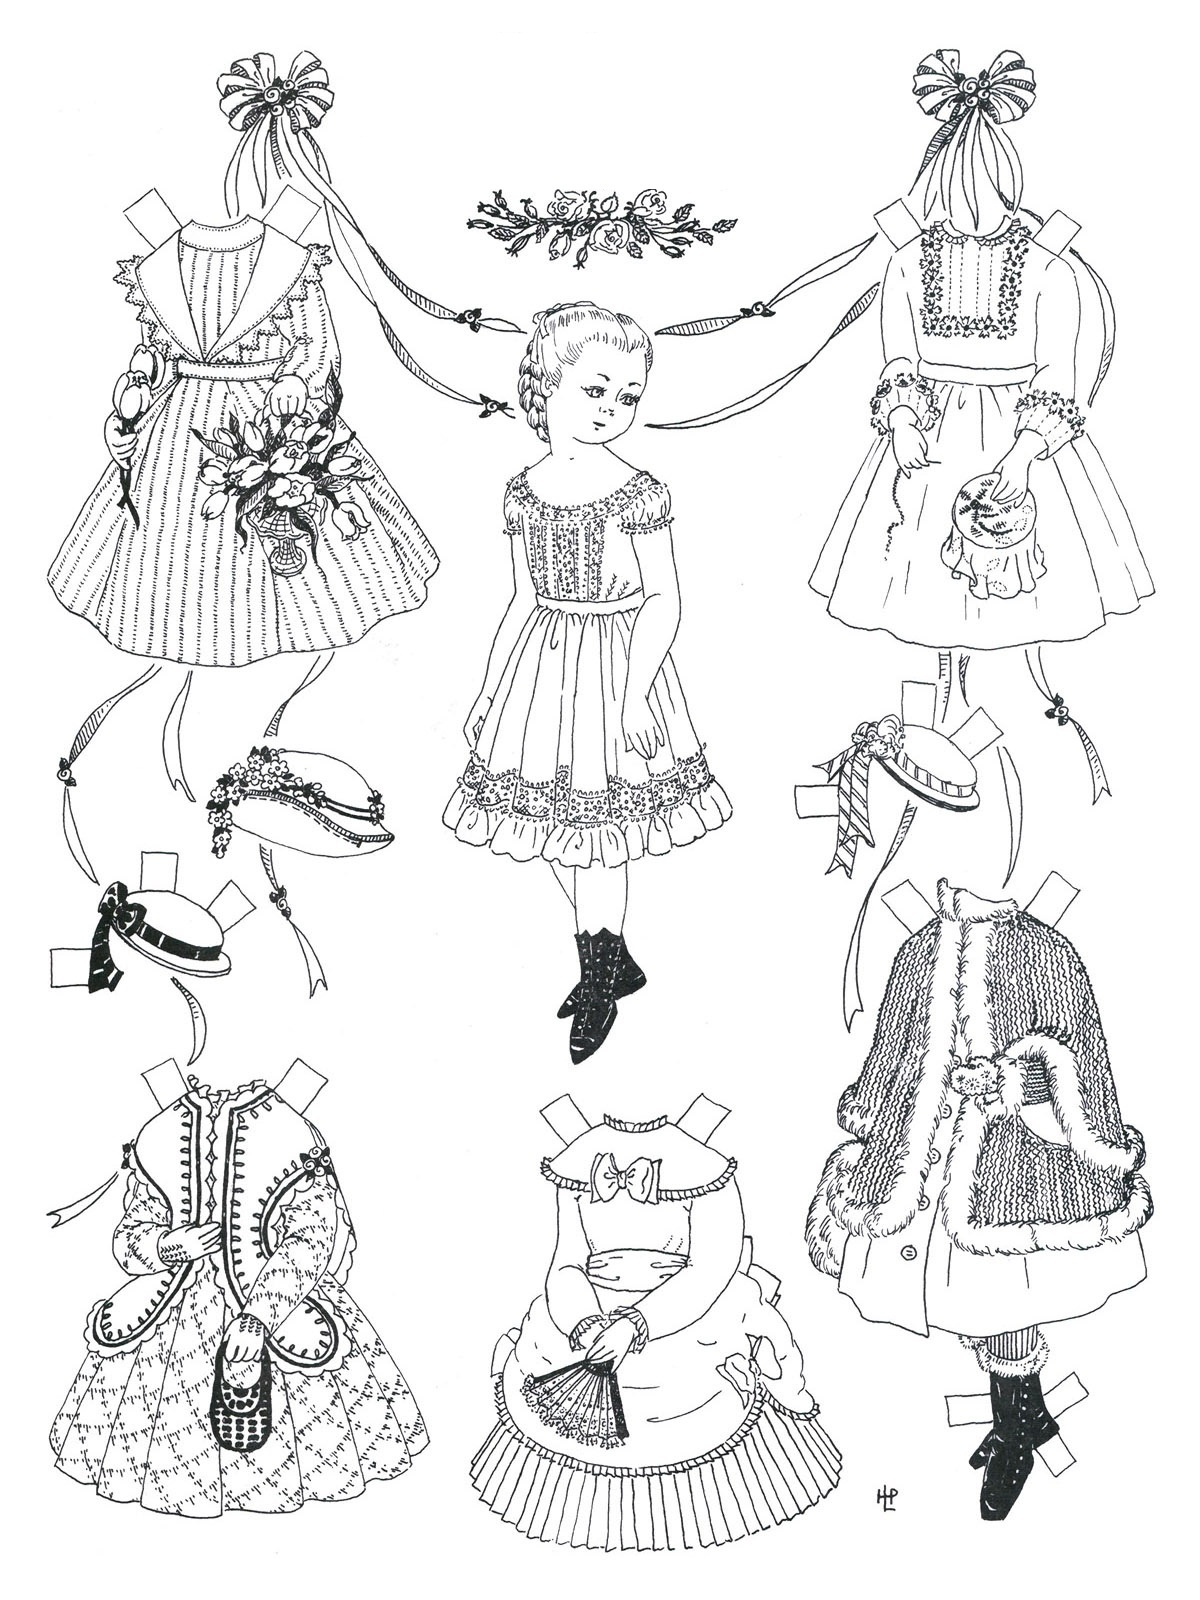 Free Printable Paper Doll Coloring Pages For Kids - Printable Paper Dolls To Color Free